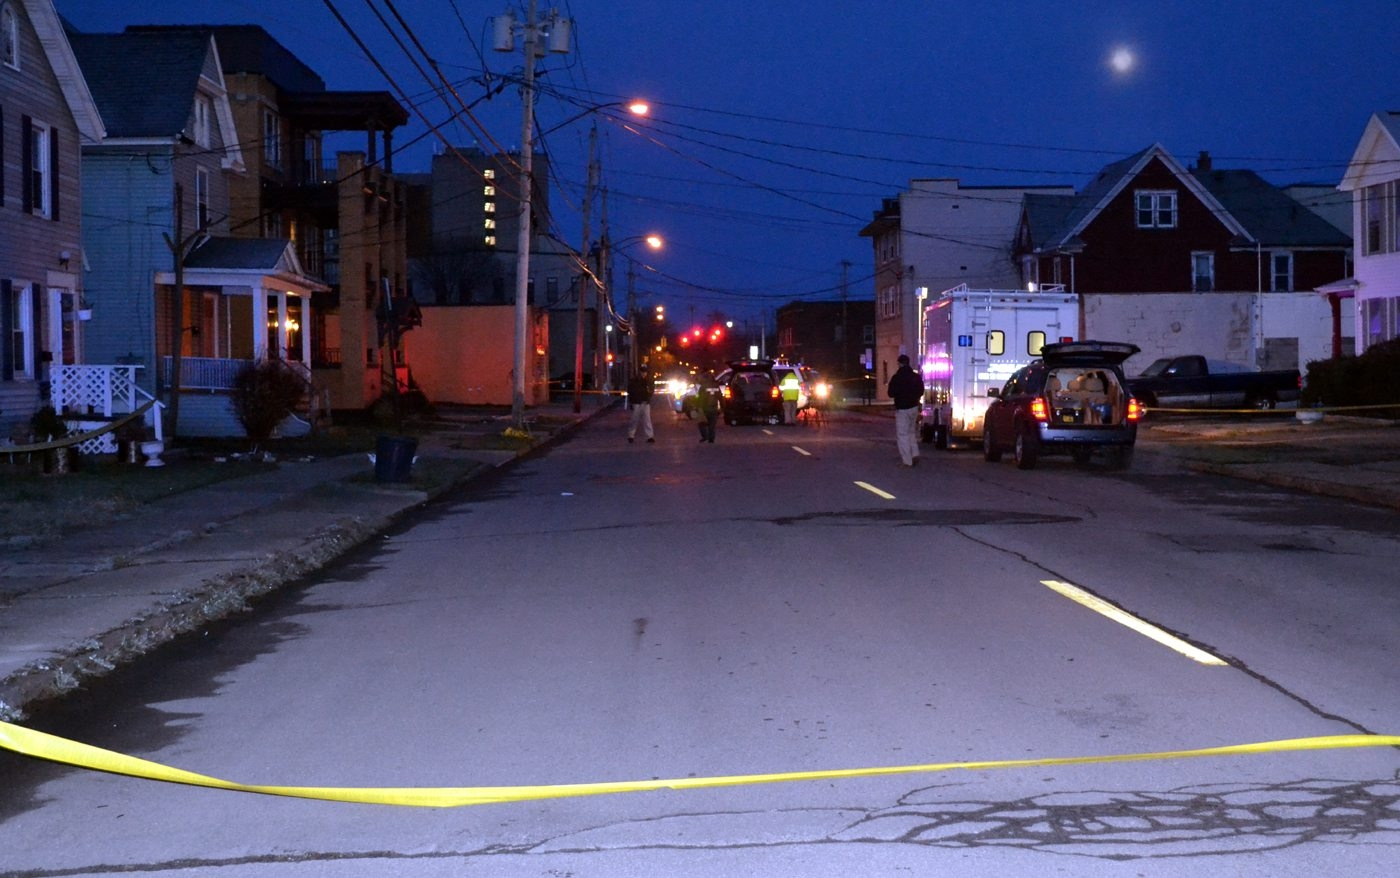 Police on the scene of a homicide at 947 Ontario Ave. in Niagara Falls. (Larry Kensinger/Special to the News)